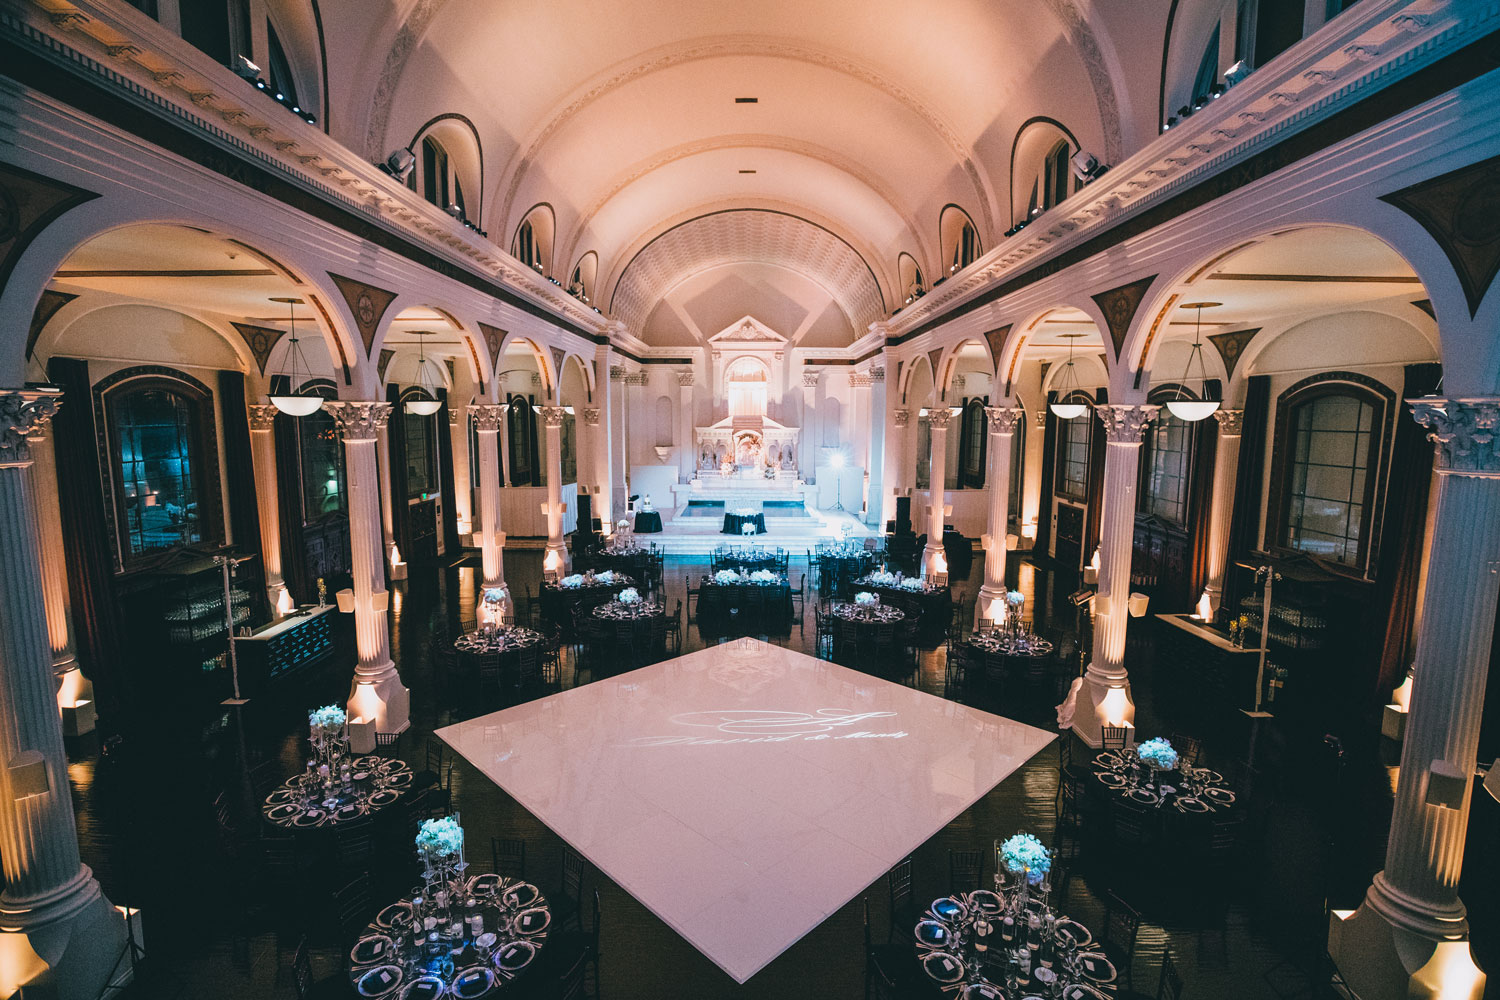 los angeles vibiana weddin, black and white wedding, black wedding tables white dance floor in the middle, disney songs to use in your wedding